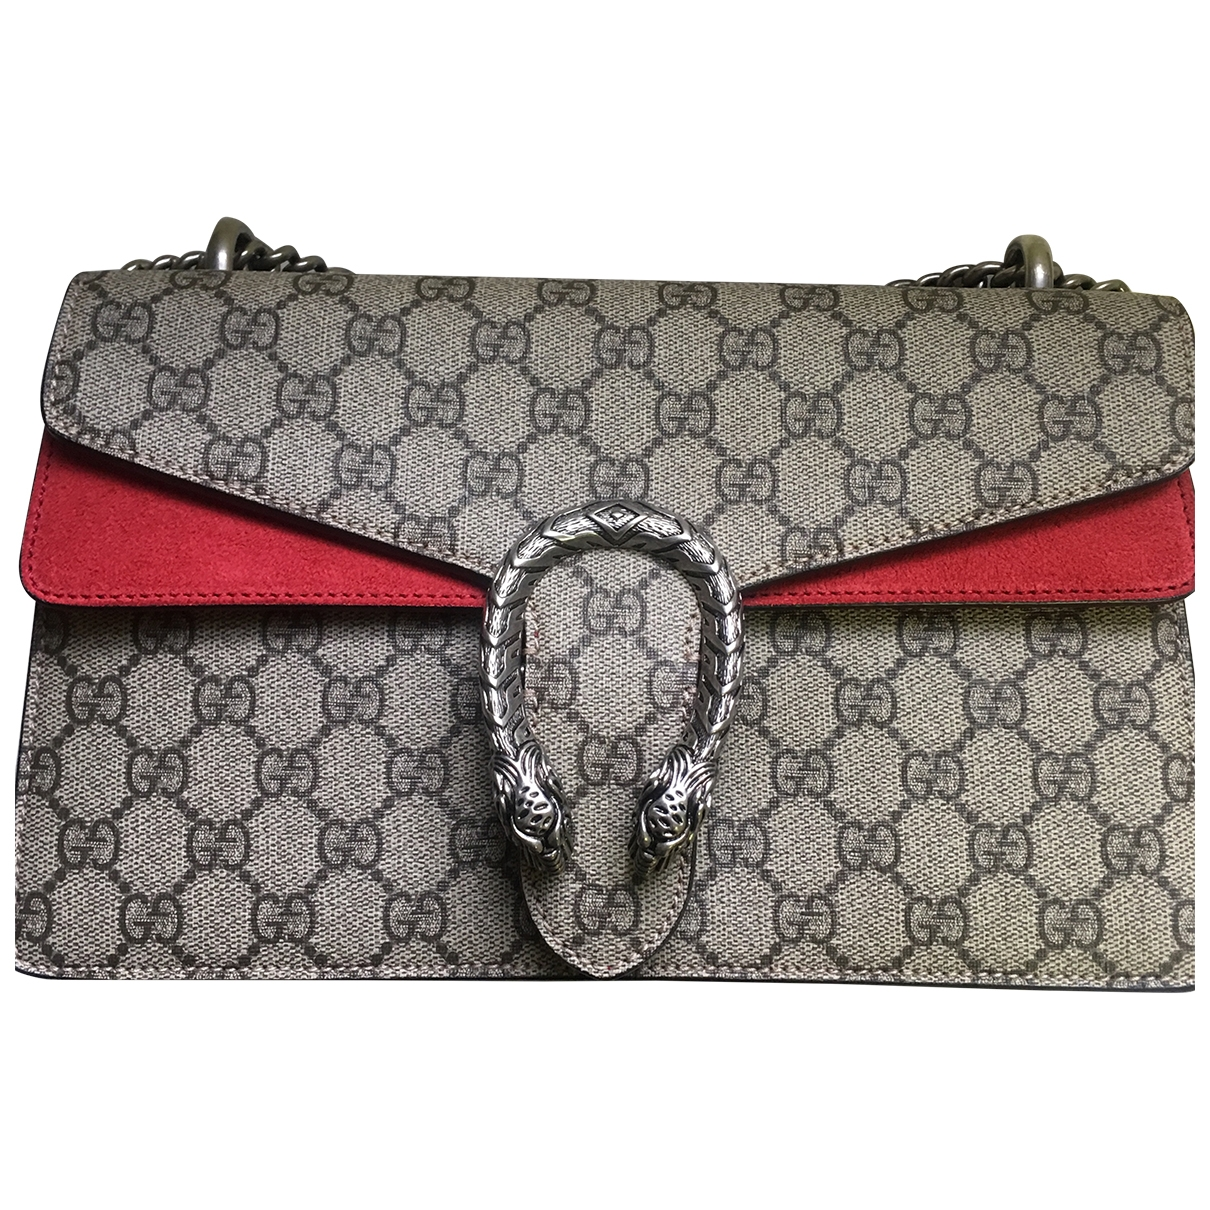 Gucci Dionysus Beige Cloth handbag for Women \N